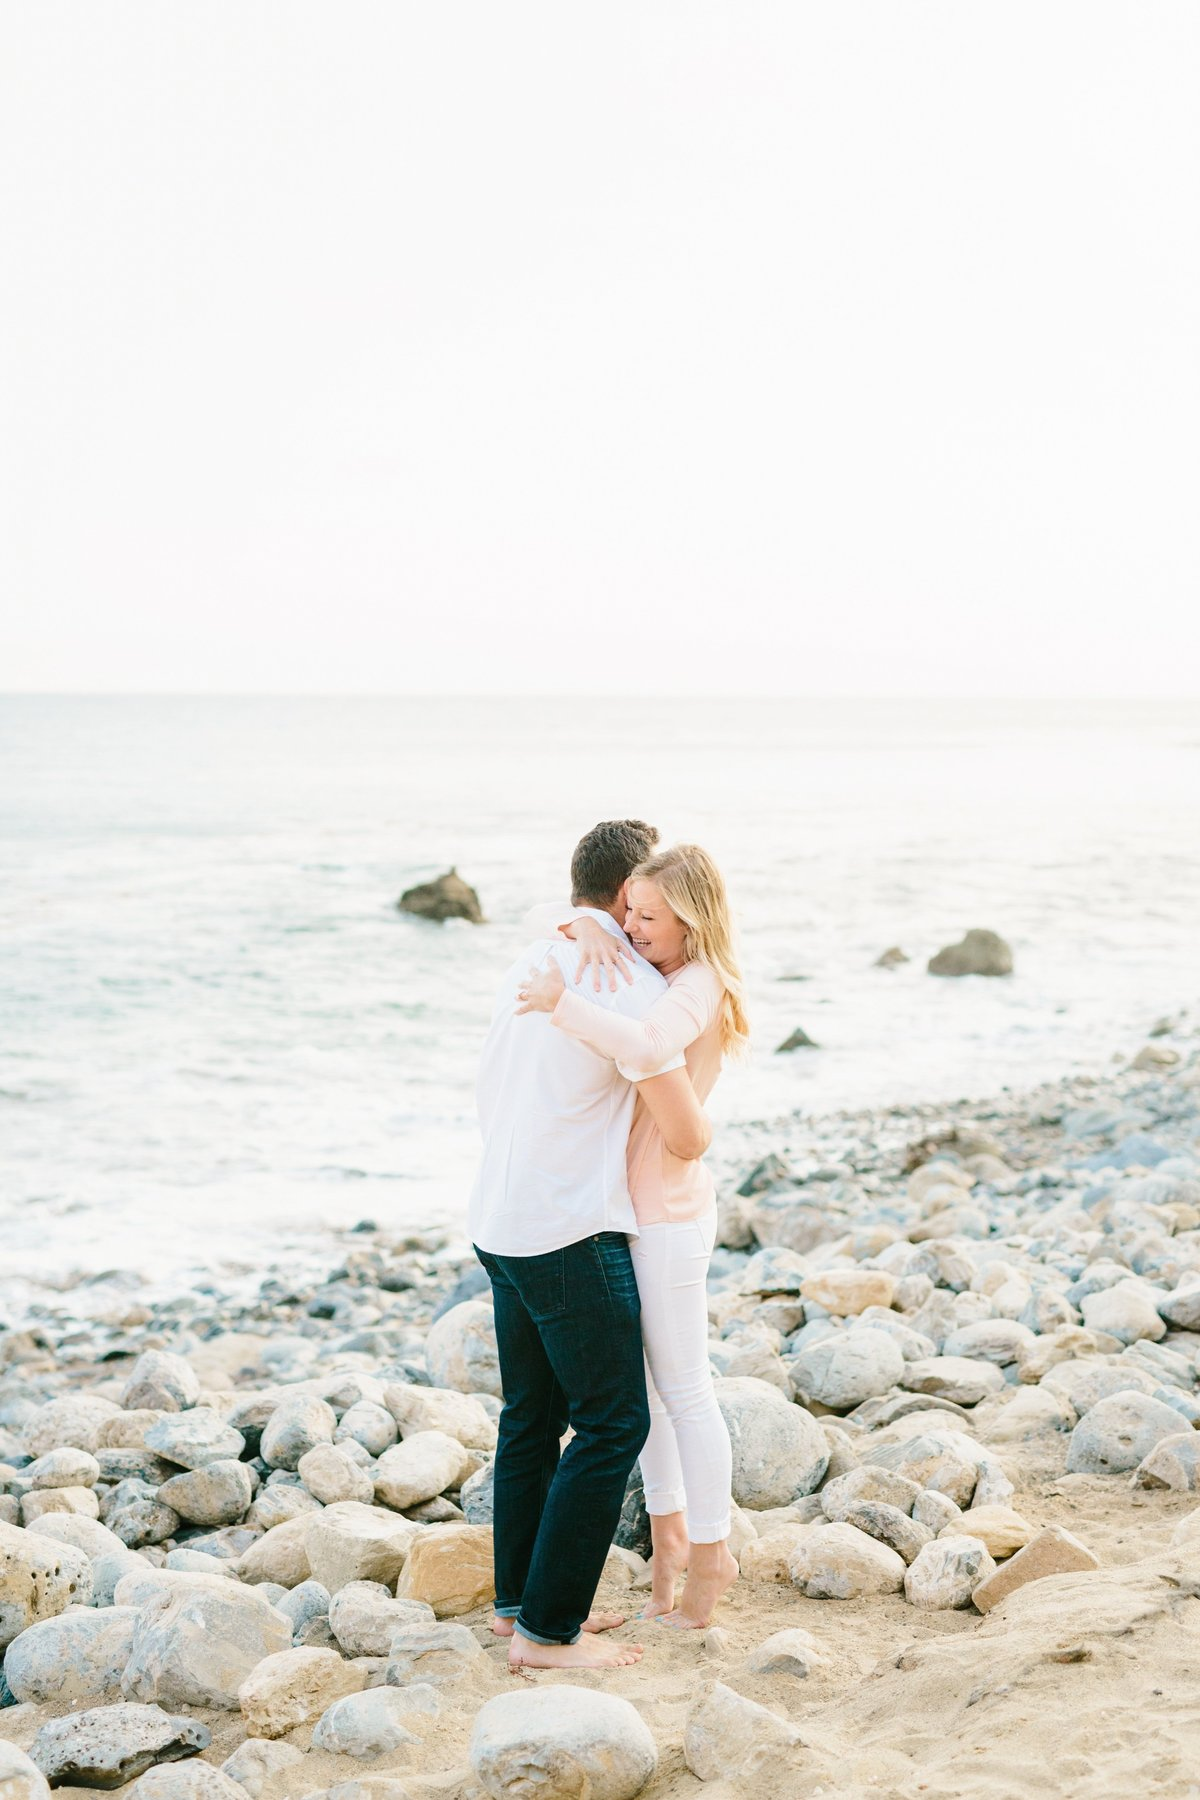 Best California Engagement Photographer-Jodee Debes Photography-29